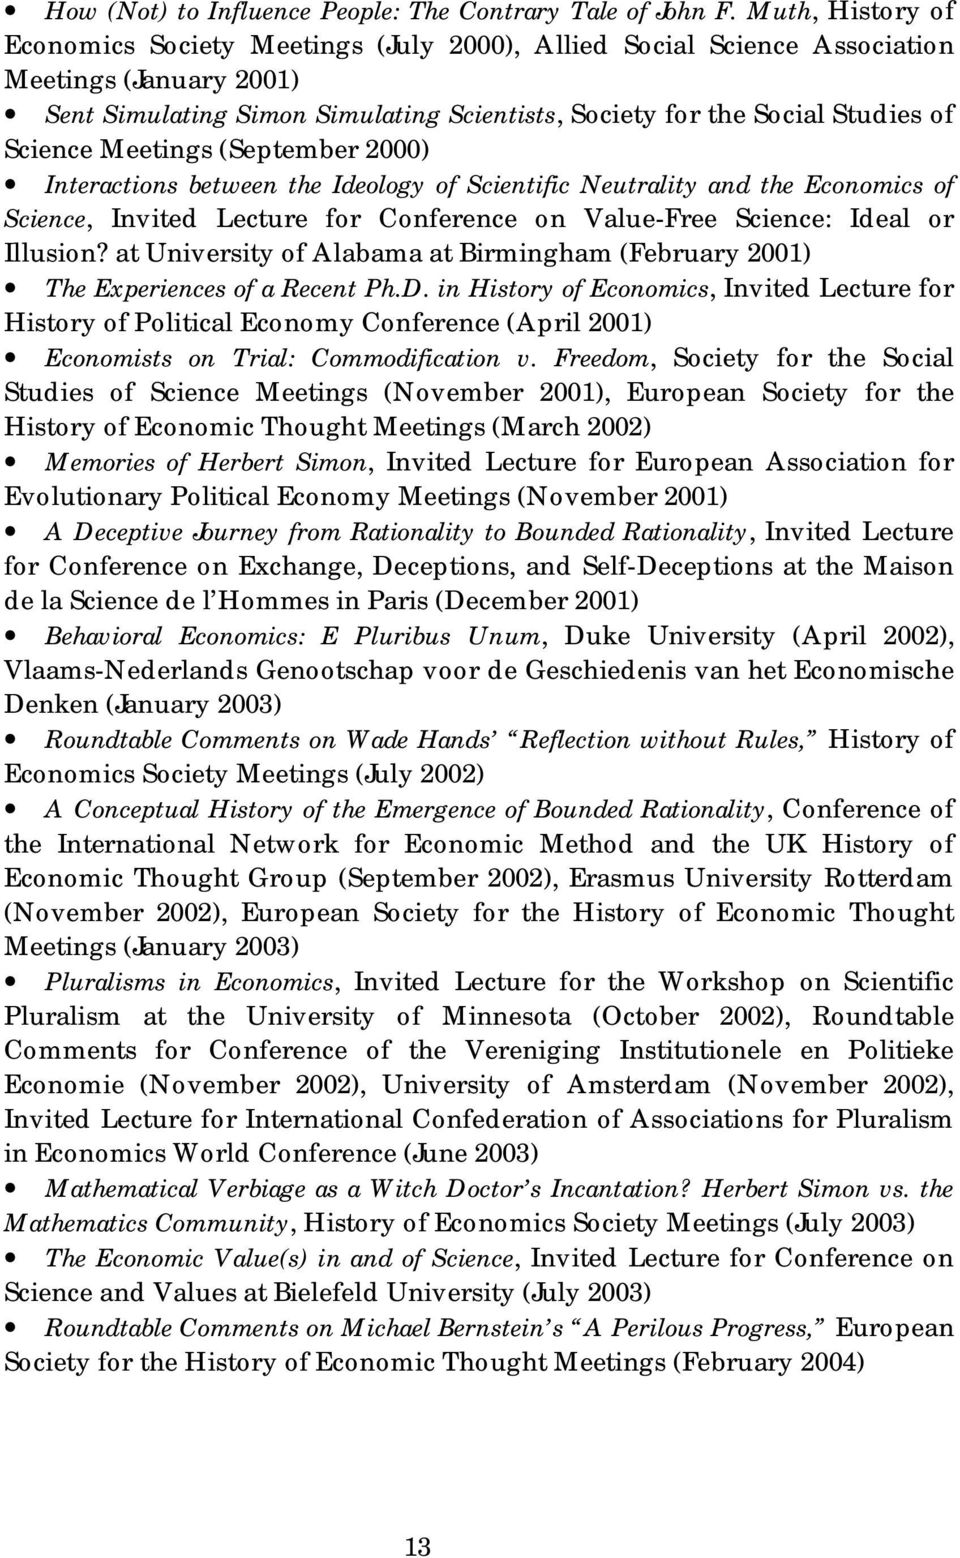 Science Meetings (September 2000) Interactions between the Ideology of Scientific Neutrality and the Economics of Science, Invited Lecture for Conference on Value-Free Science: Ideal or Illusion?